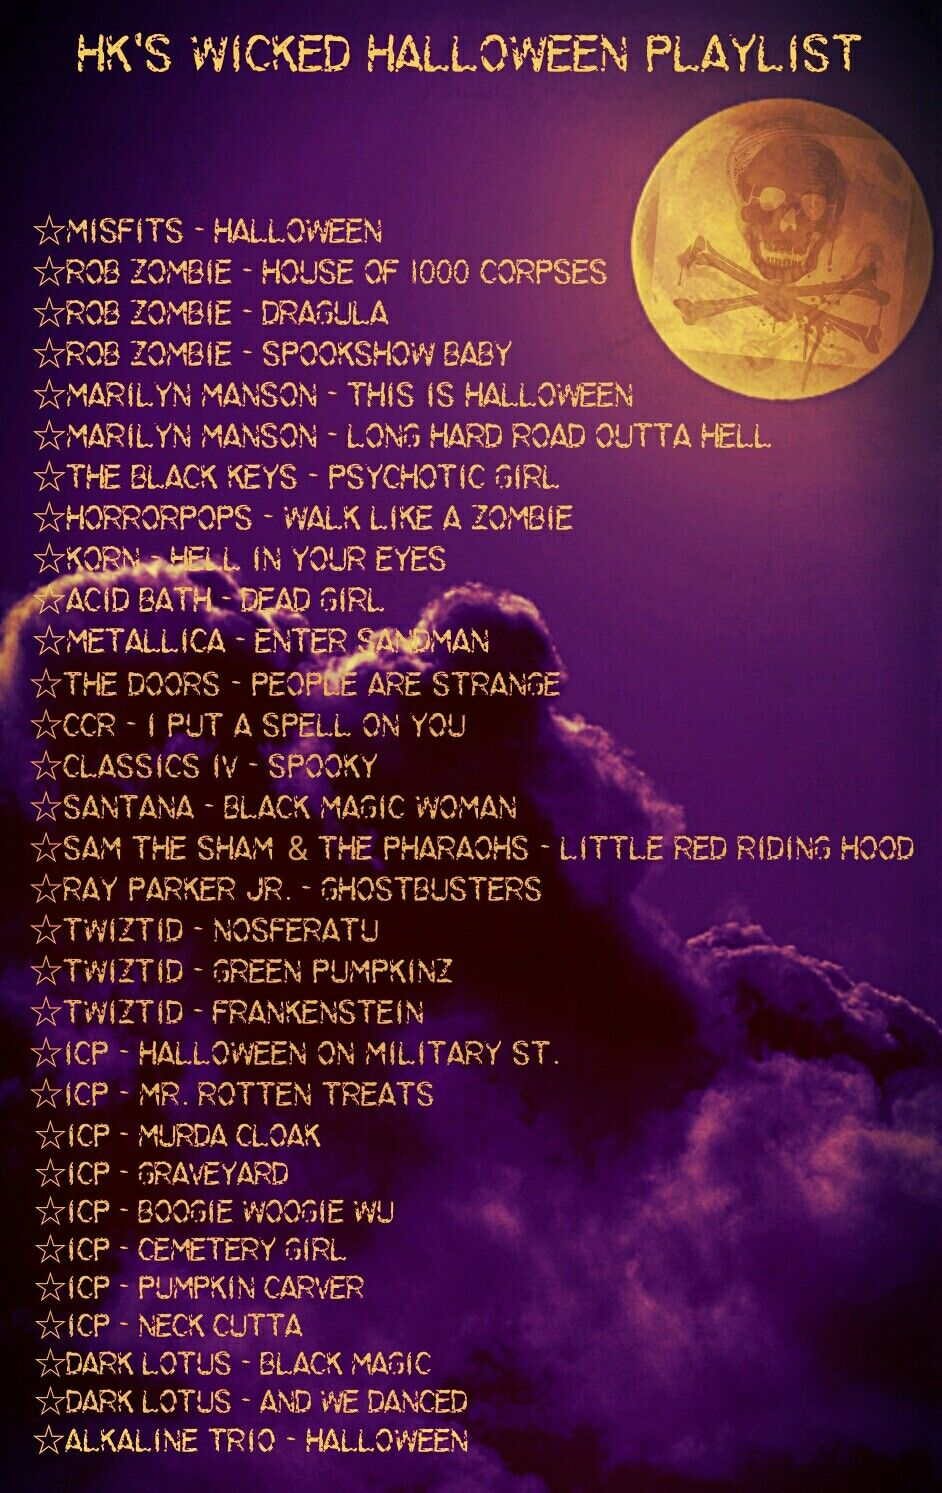 Halloween Playlist 2020 Rock Made my own epic Halloween playlist to get in the spooky spirit